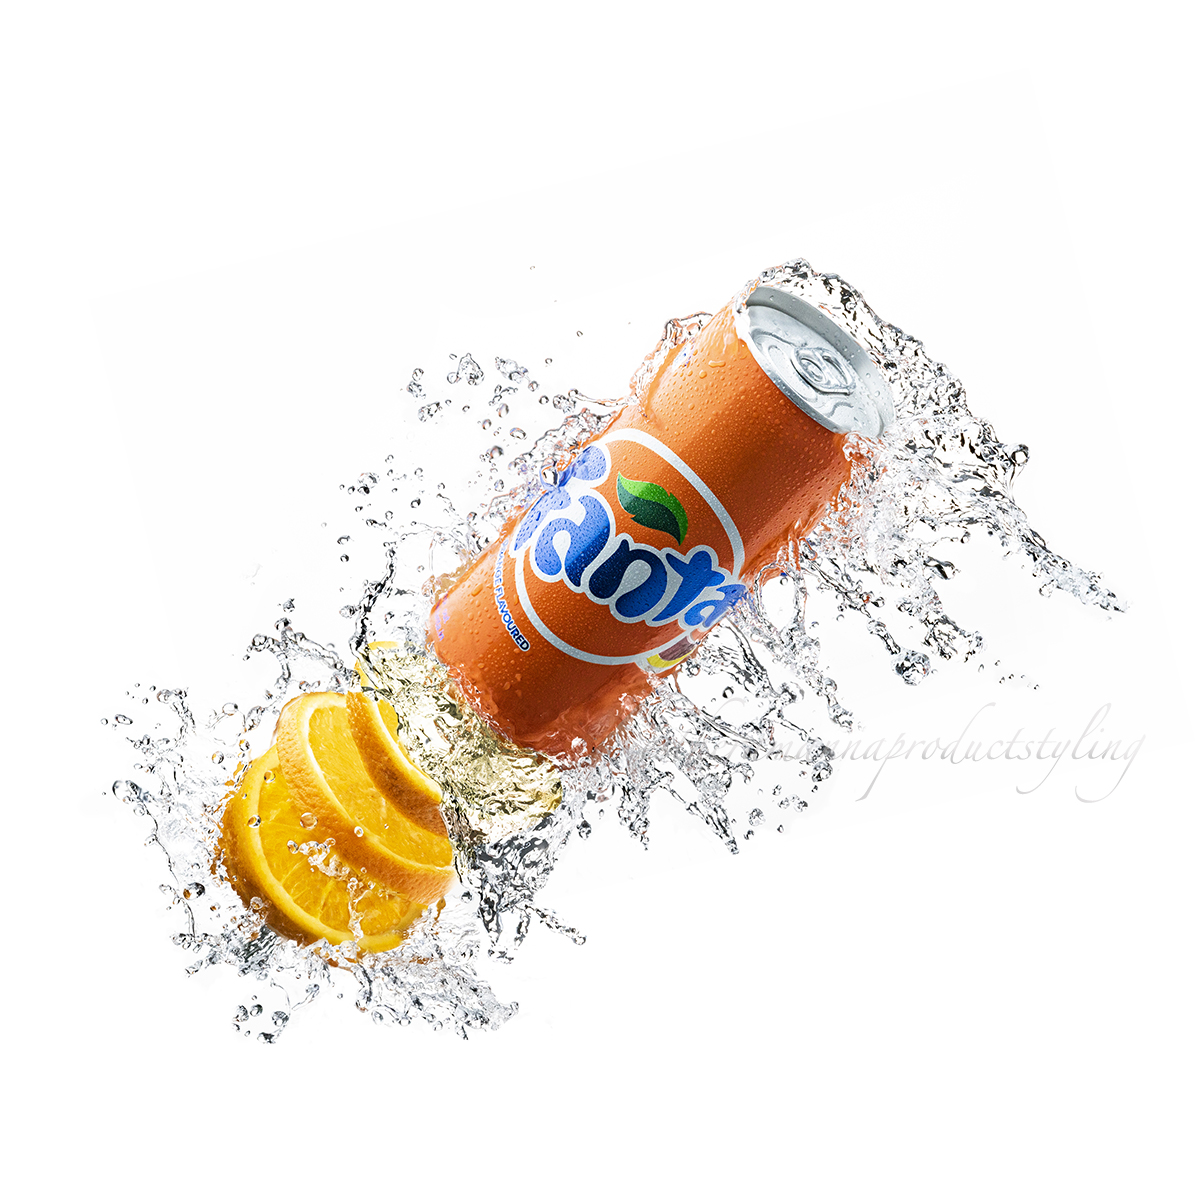 Fanta,cold drink,water droplets,special effects,foodstyling